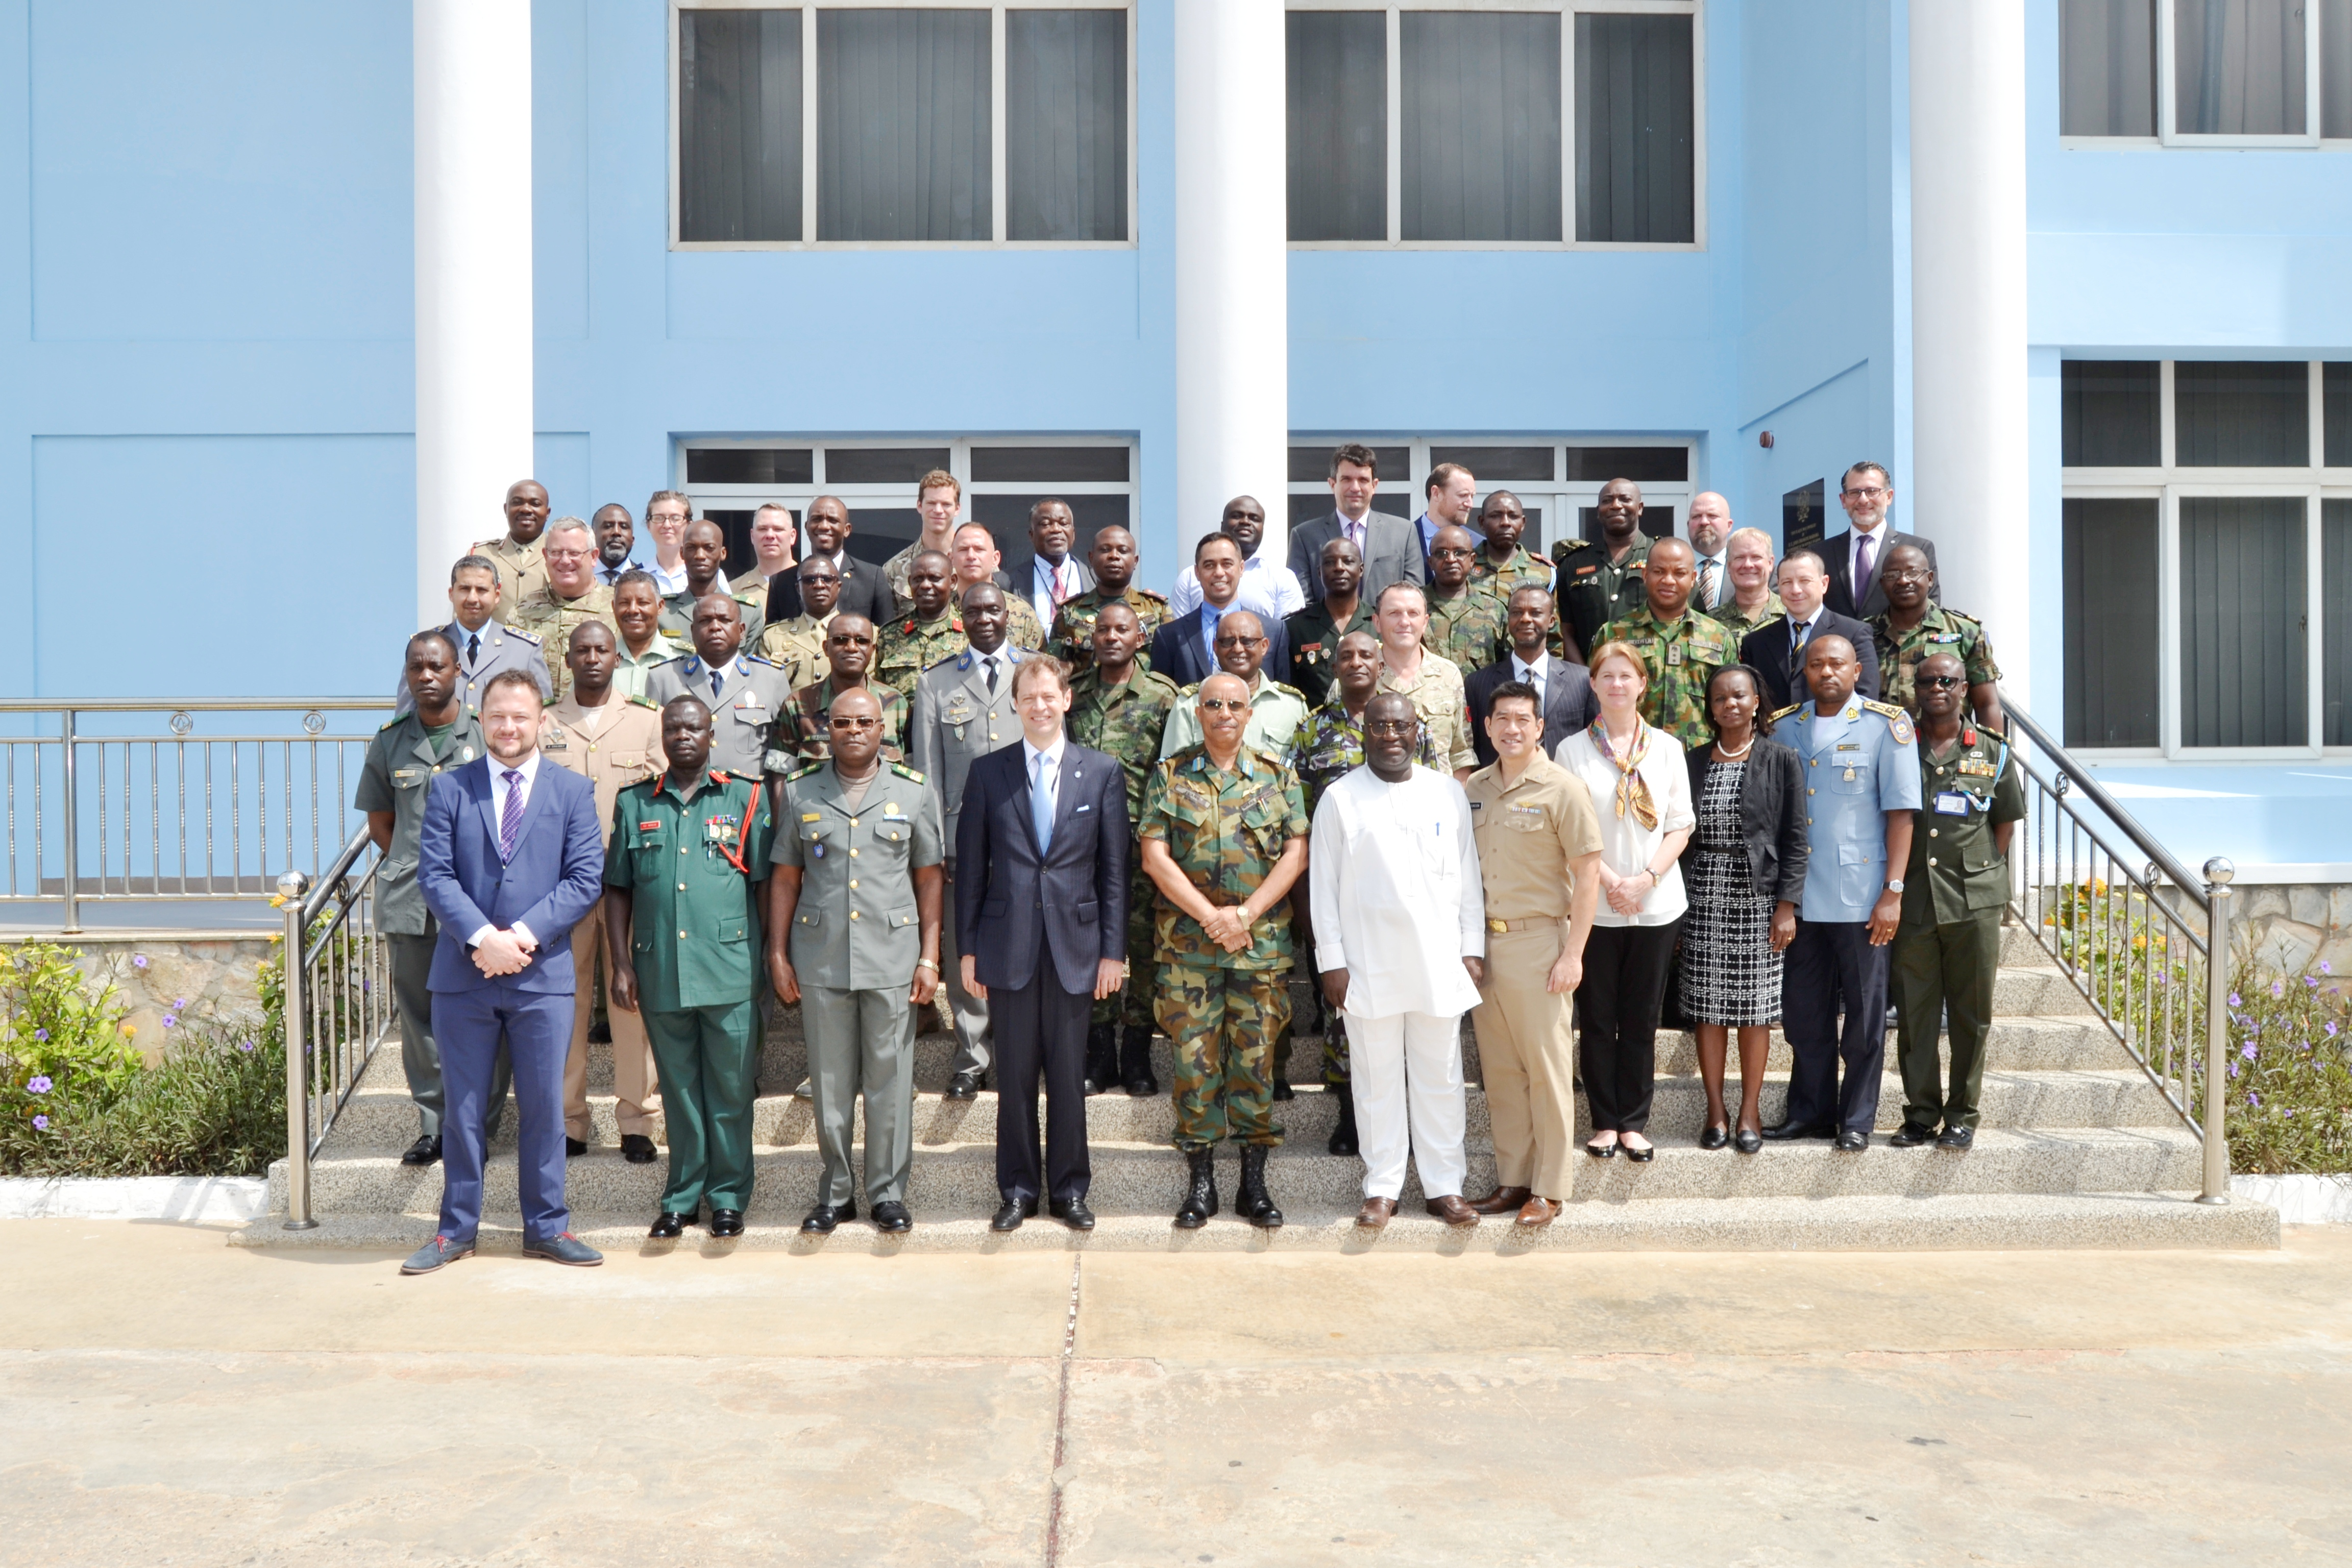 "The Kofi Annan International Peacekeeping Training Center in Accra, Ghana hosted the first UN Military Unit Manuals Regional Seminar, with support from the US Africa Command March 8-10, 2017.  The seminar shared the methodology for the eleven UN peacekeeping field manuals with all major African troop contributing countries for their awareness and implementation at their respective peacekeeping training centers.  Partnering with the UN Dept. of Peacekeeping Operations and African academic centers of excellence such as the KAIPTC greatly enables AFRICOM to advance AFRICOM Theater Campaign Plan efforts to ""Build African peacekeeping capacity""."